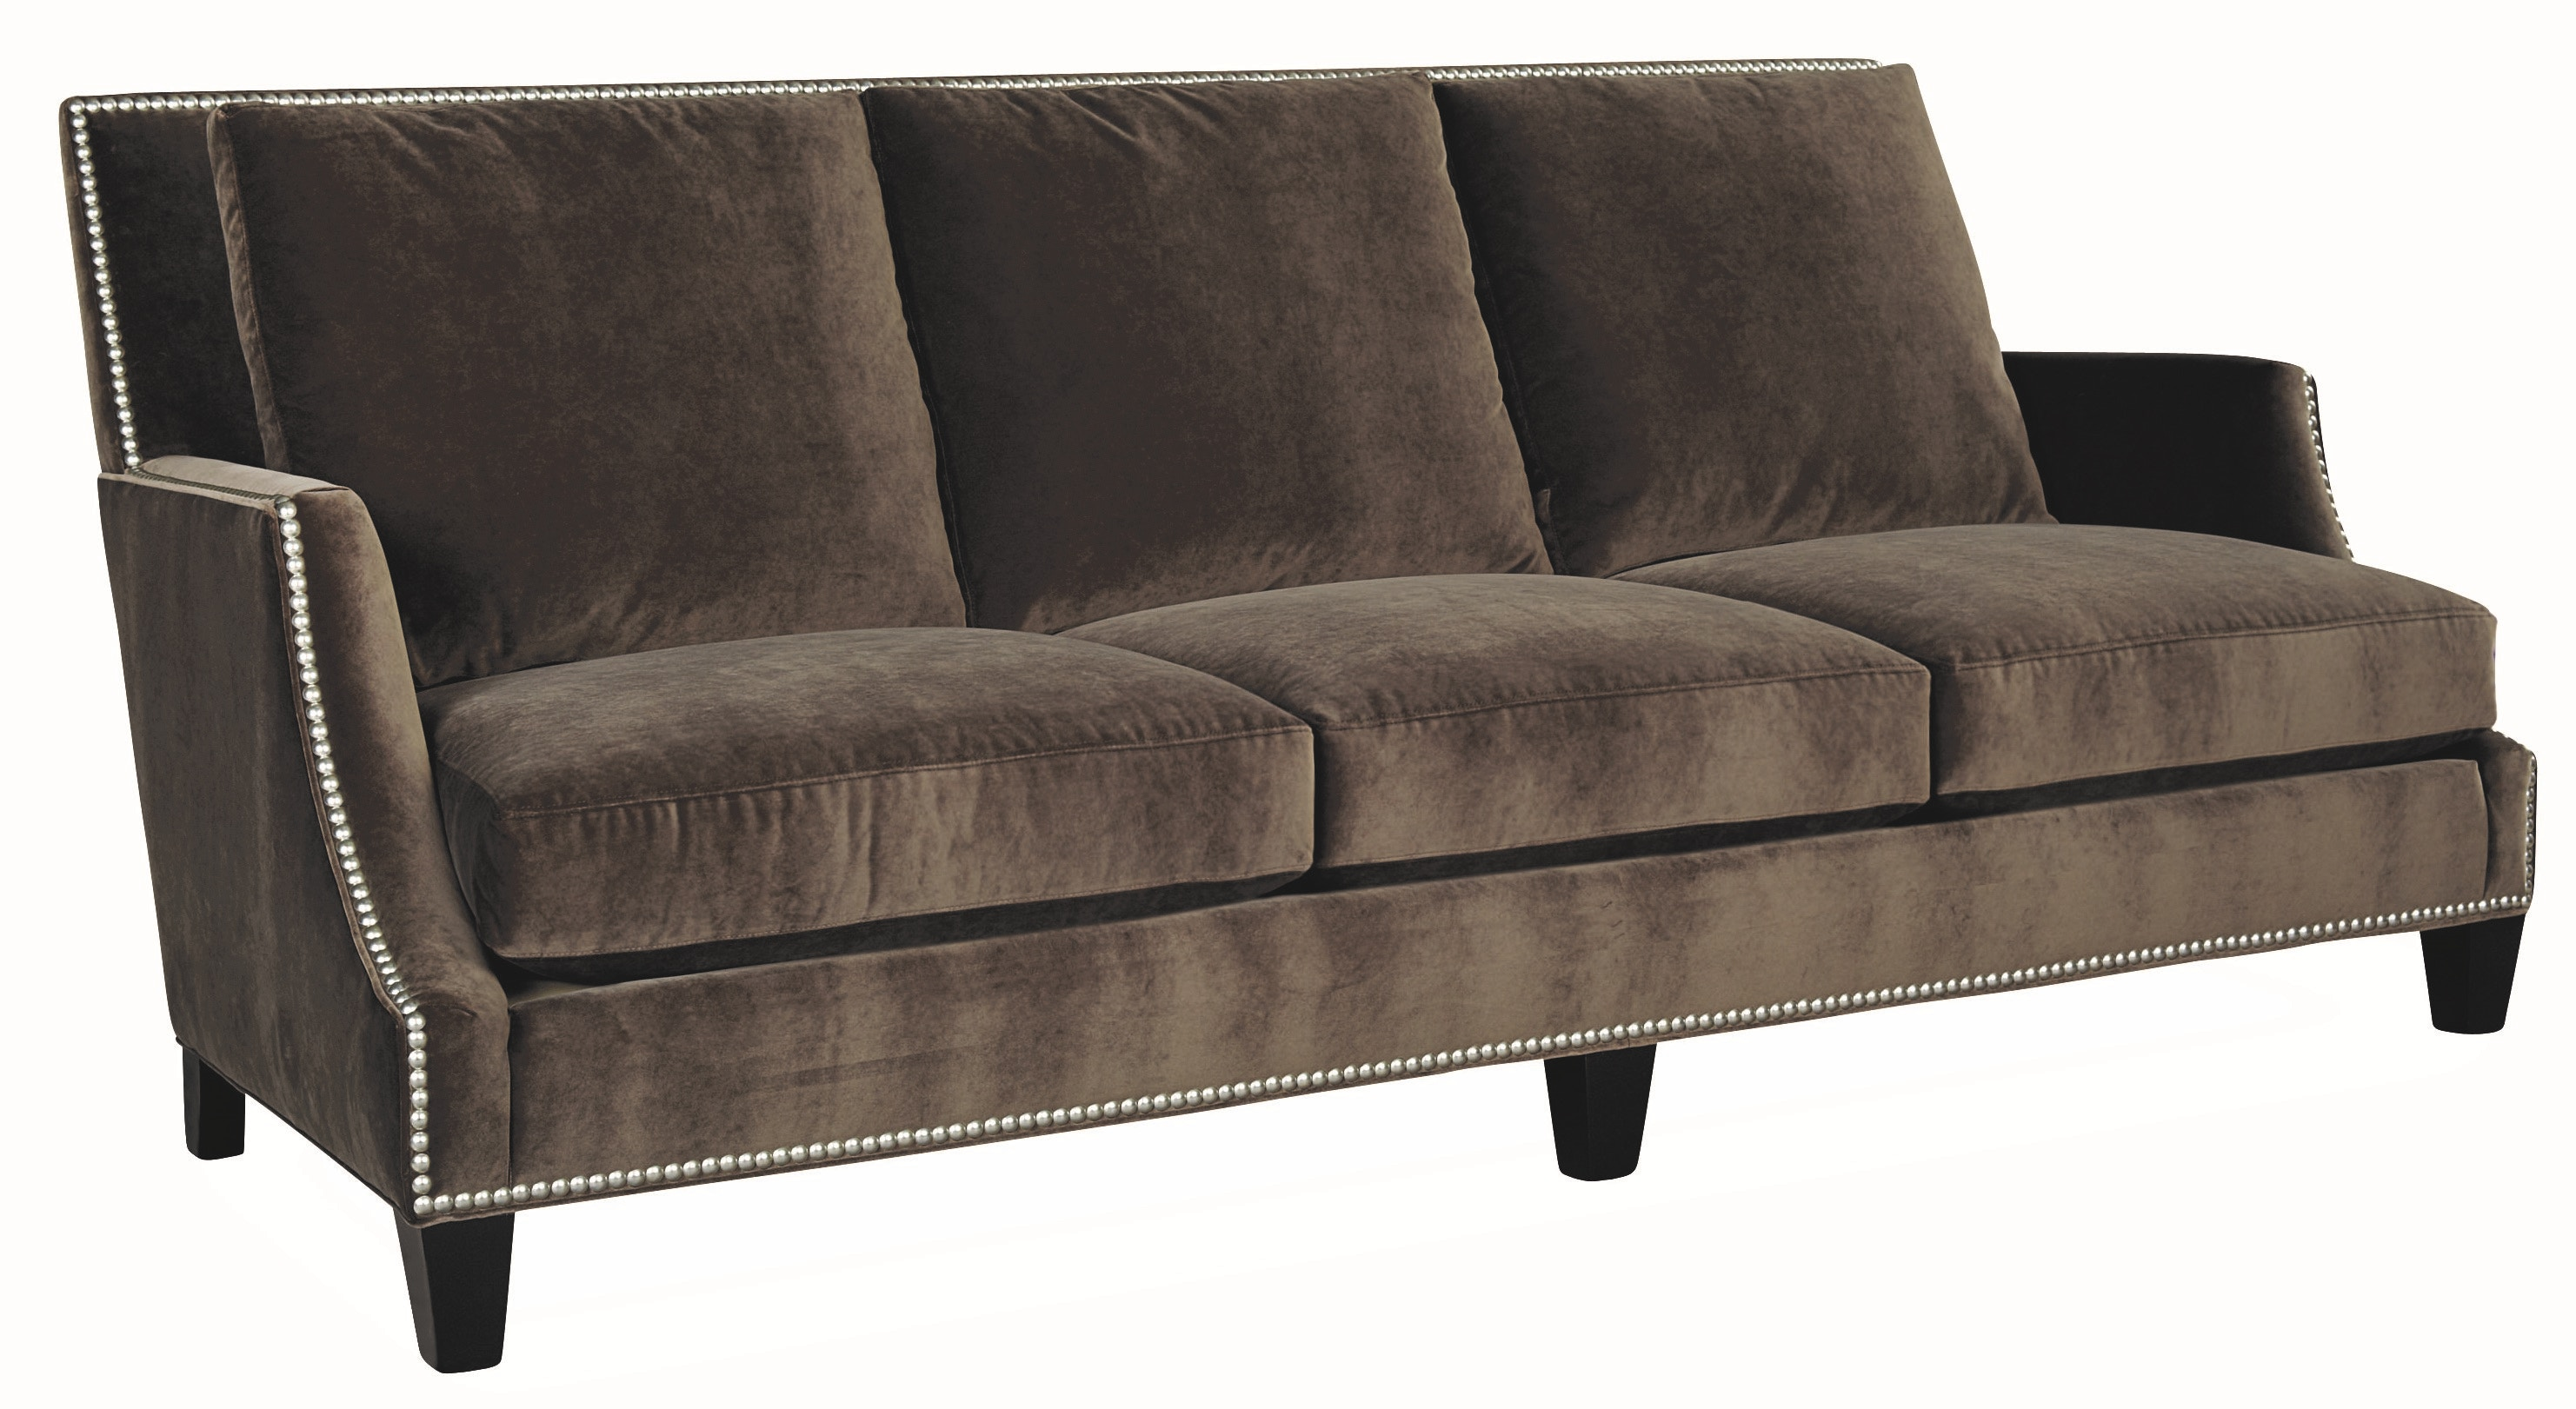 Elegant Lee Industries Sofa 3423 03